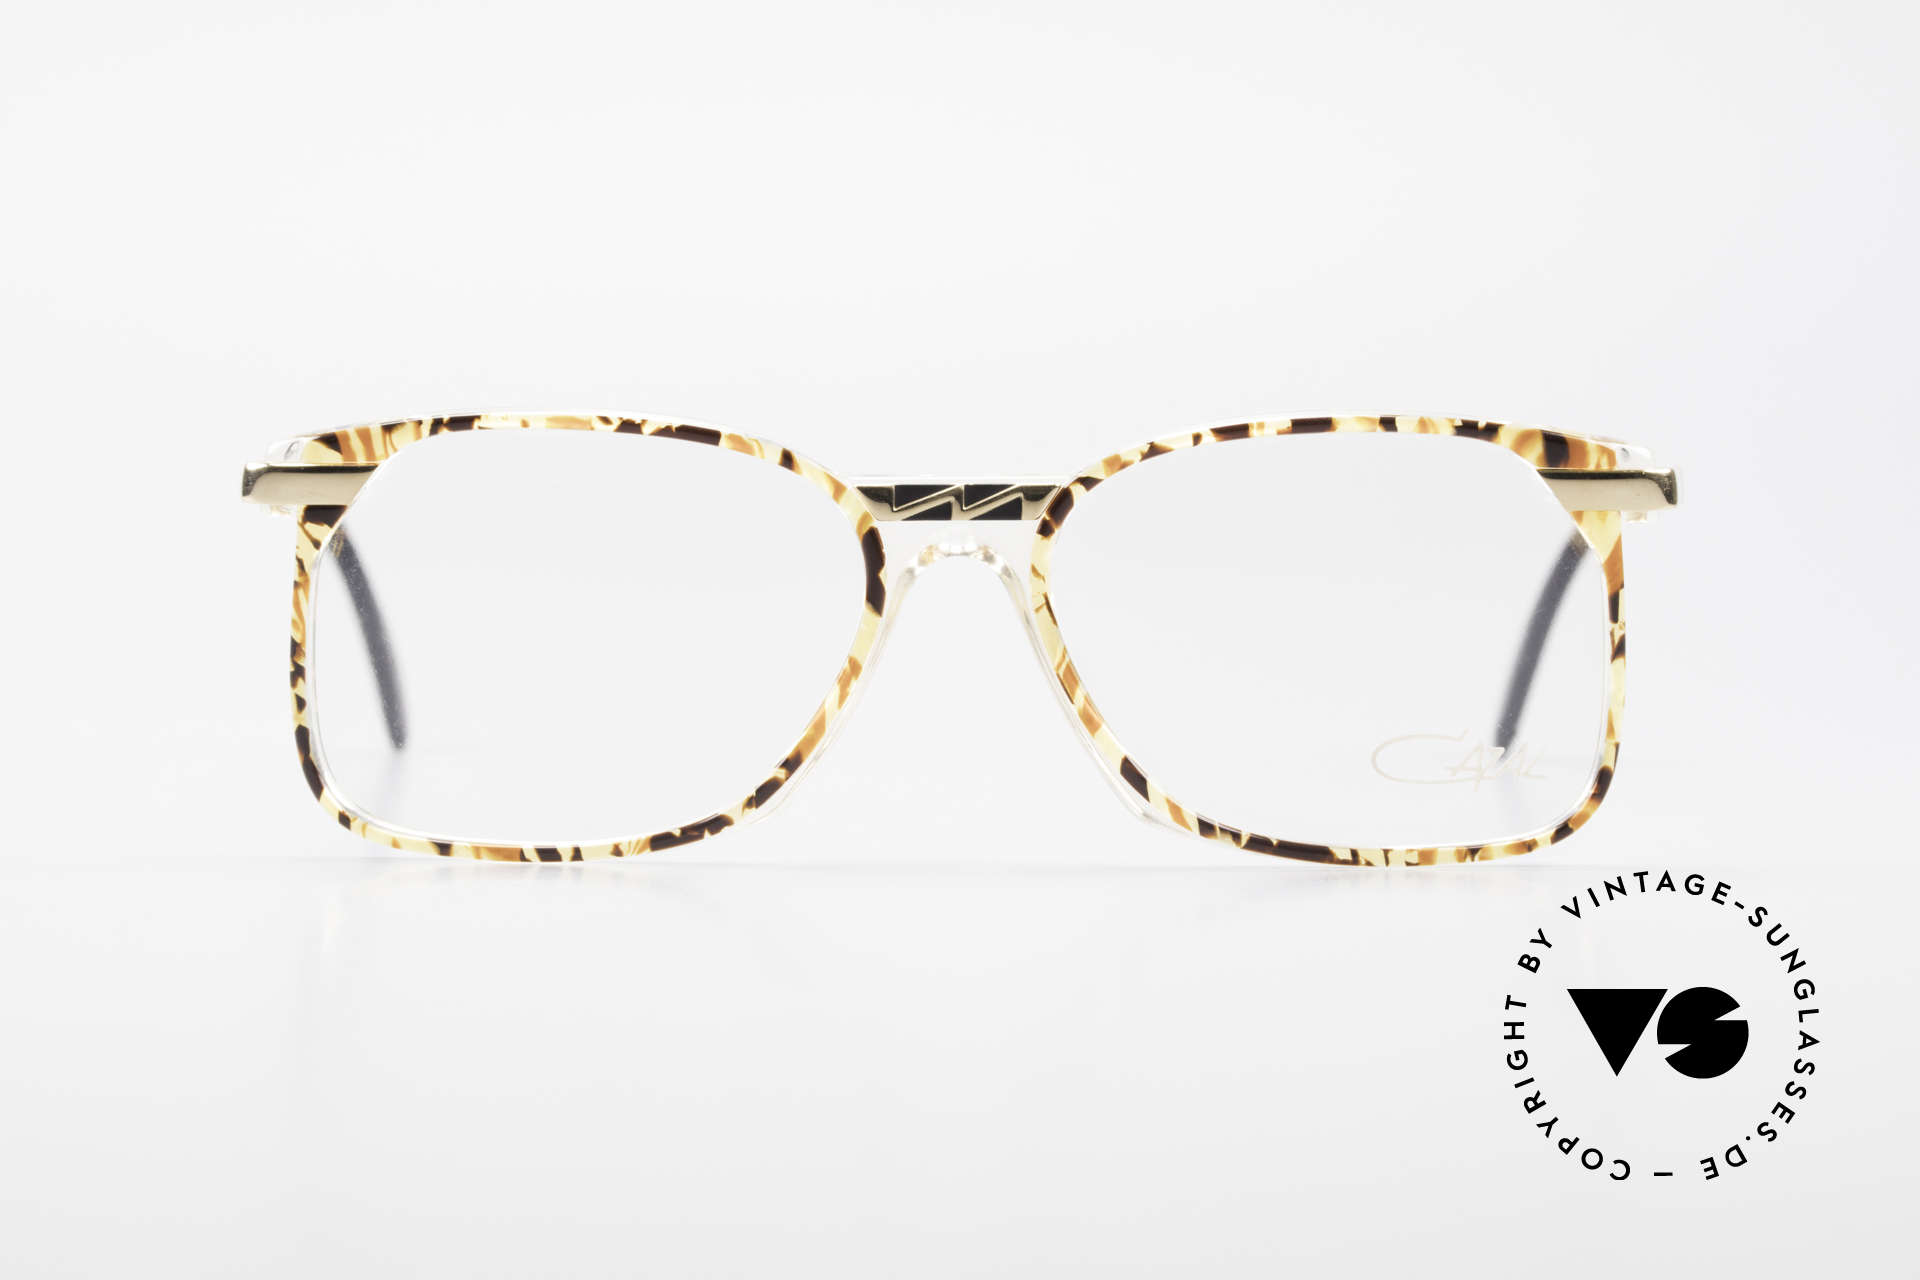 Cazal 341 True Vintage Glasses No Retro, great combination of transparency, color and metal, Made for Men and Women